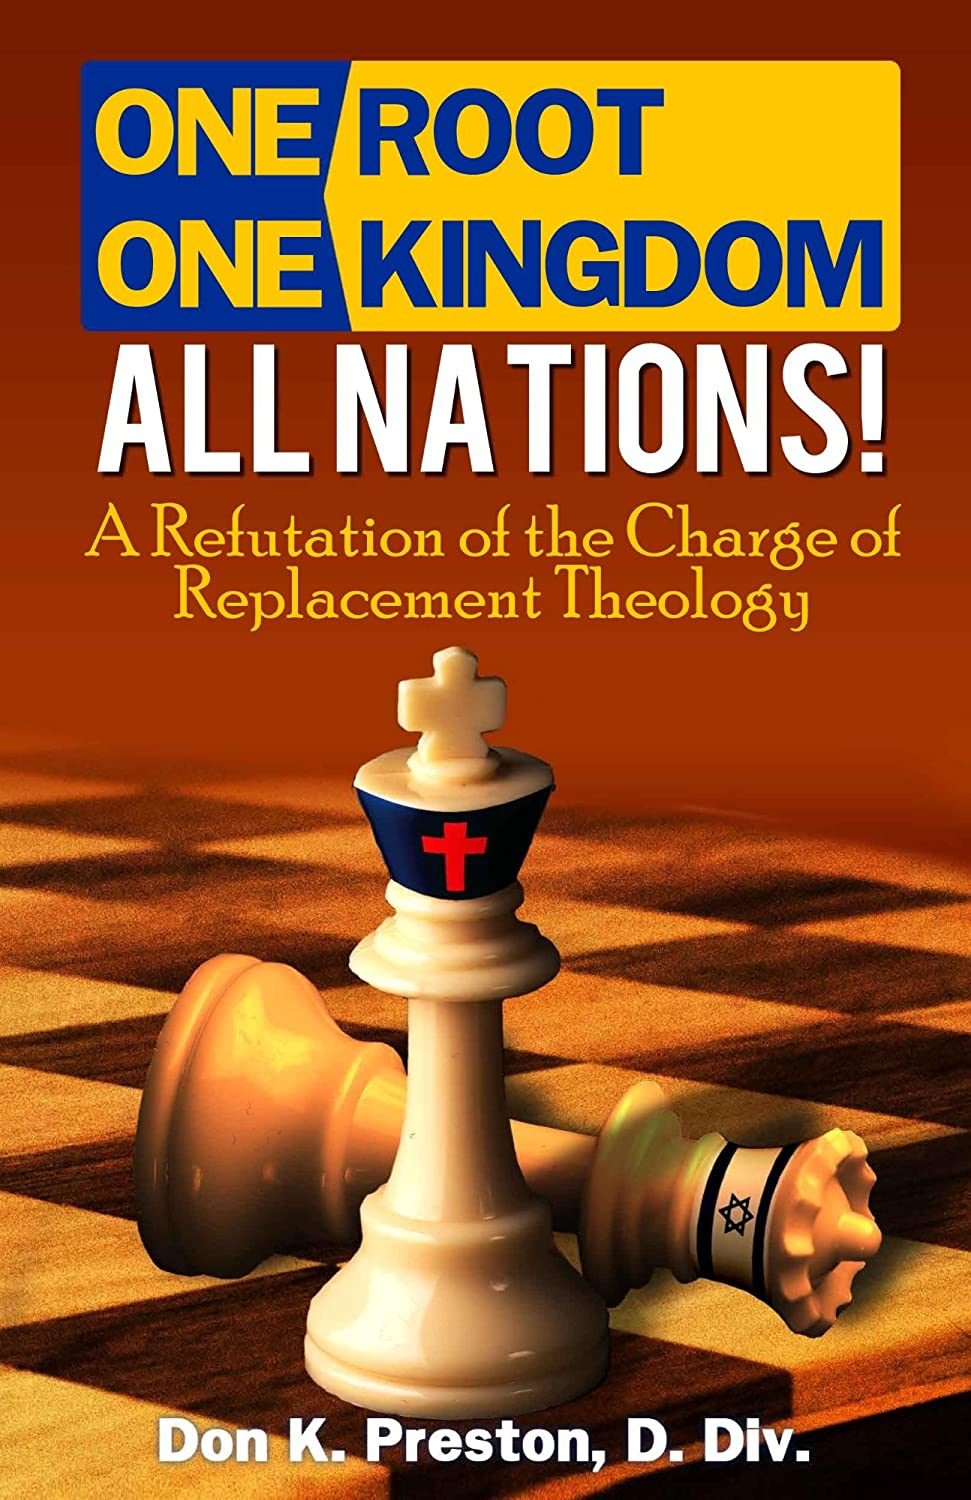 One Root, One Kingdom - All Nations!: A Refutation of the Charge of Replacement Theology (English Edition) eBook: Preston D. Div., Don K.: Amazon.es: Tienda Kindle